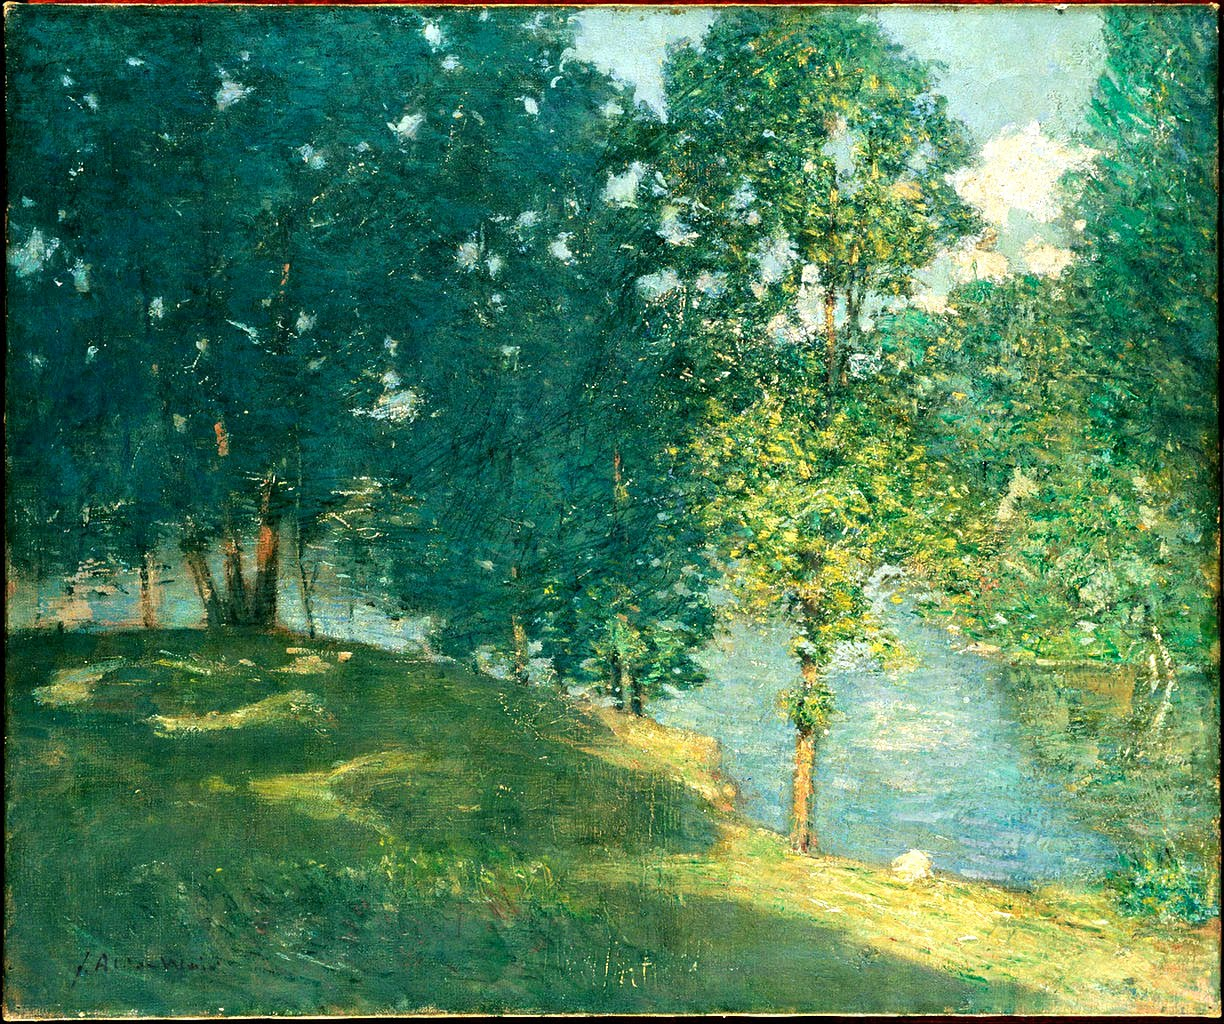 Summer pond behind the trees